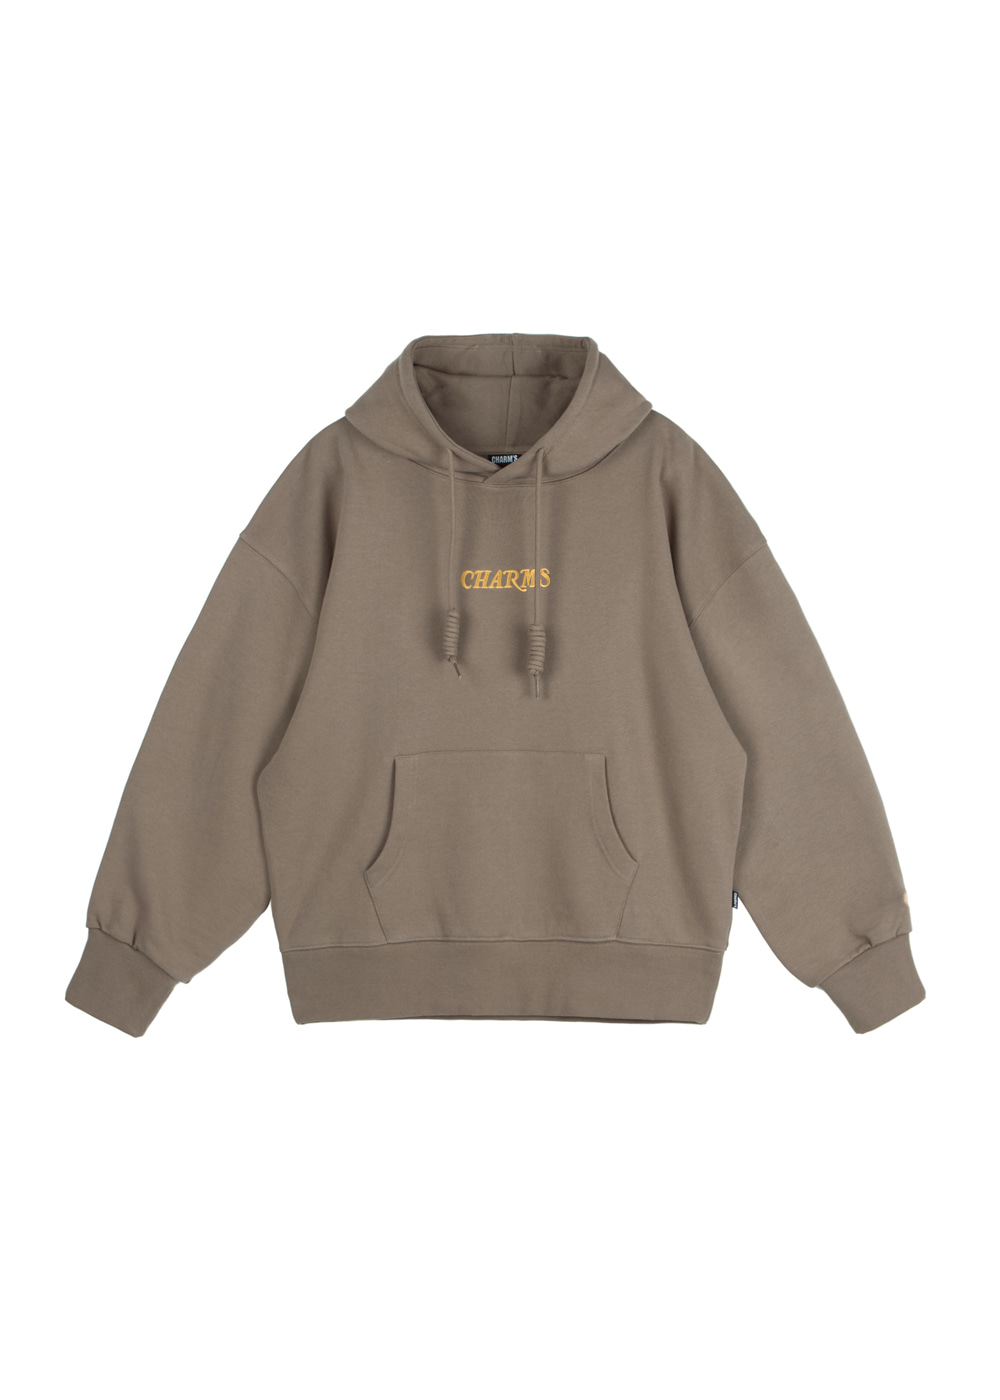 CHARMS WAVE LOGO HOODIE BR